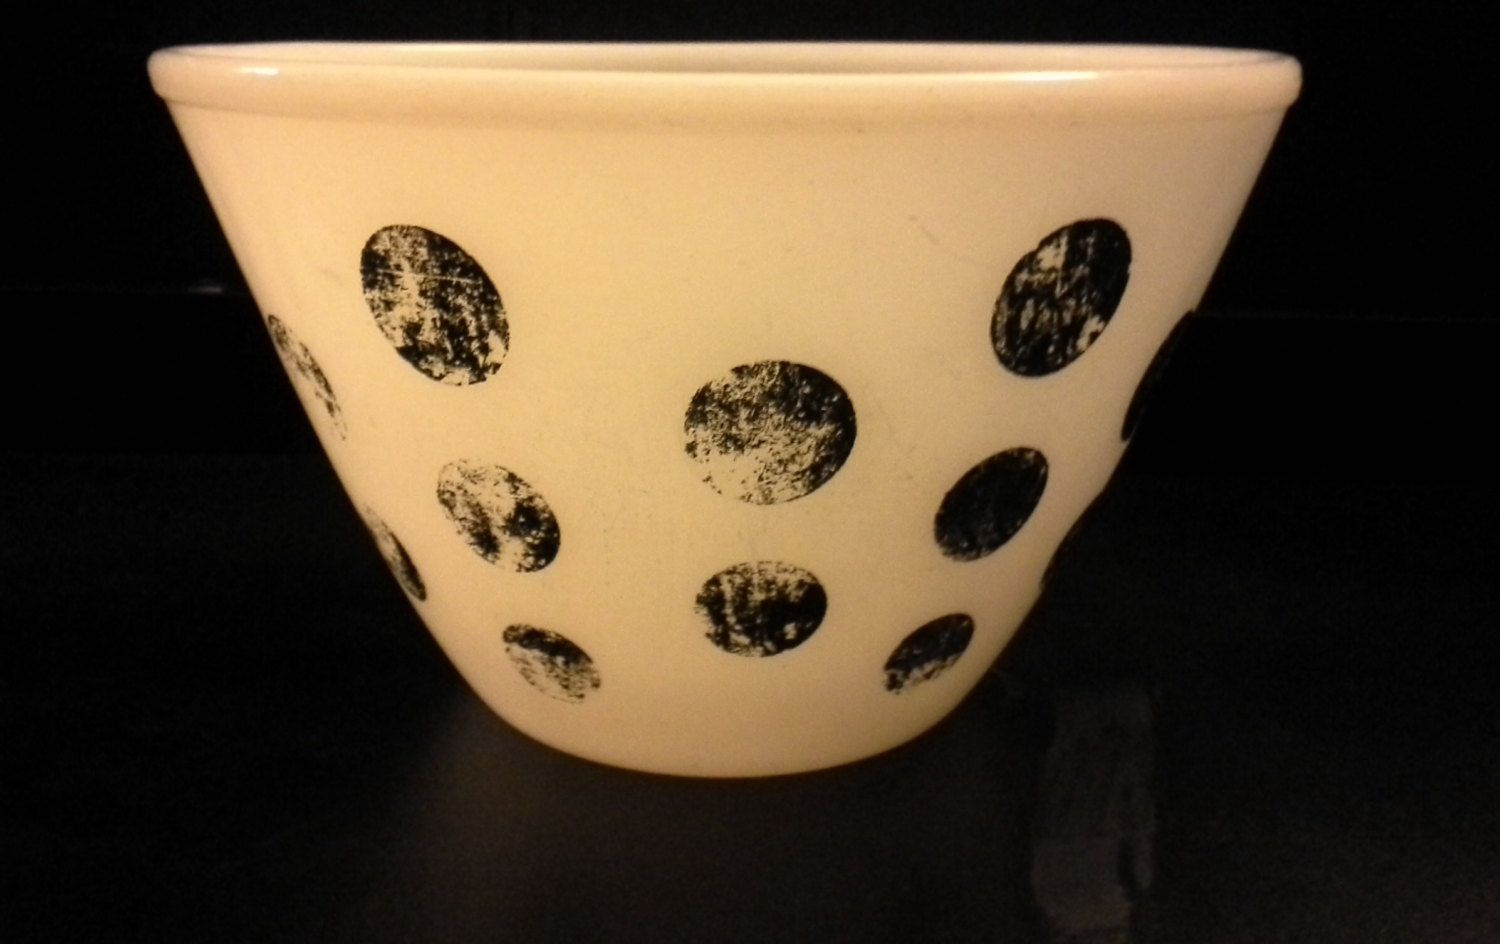 RARE Fire King Black Polka Dot Mixing Bowl, Anchor Hocking, Pyrex ...